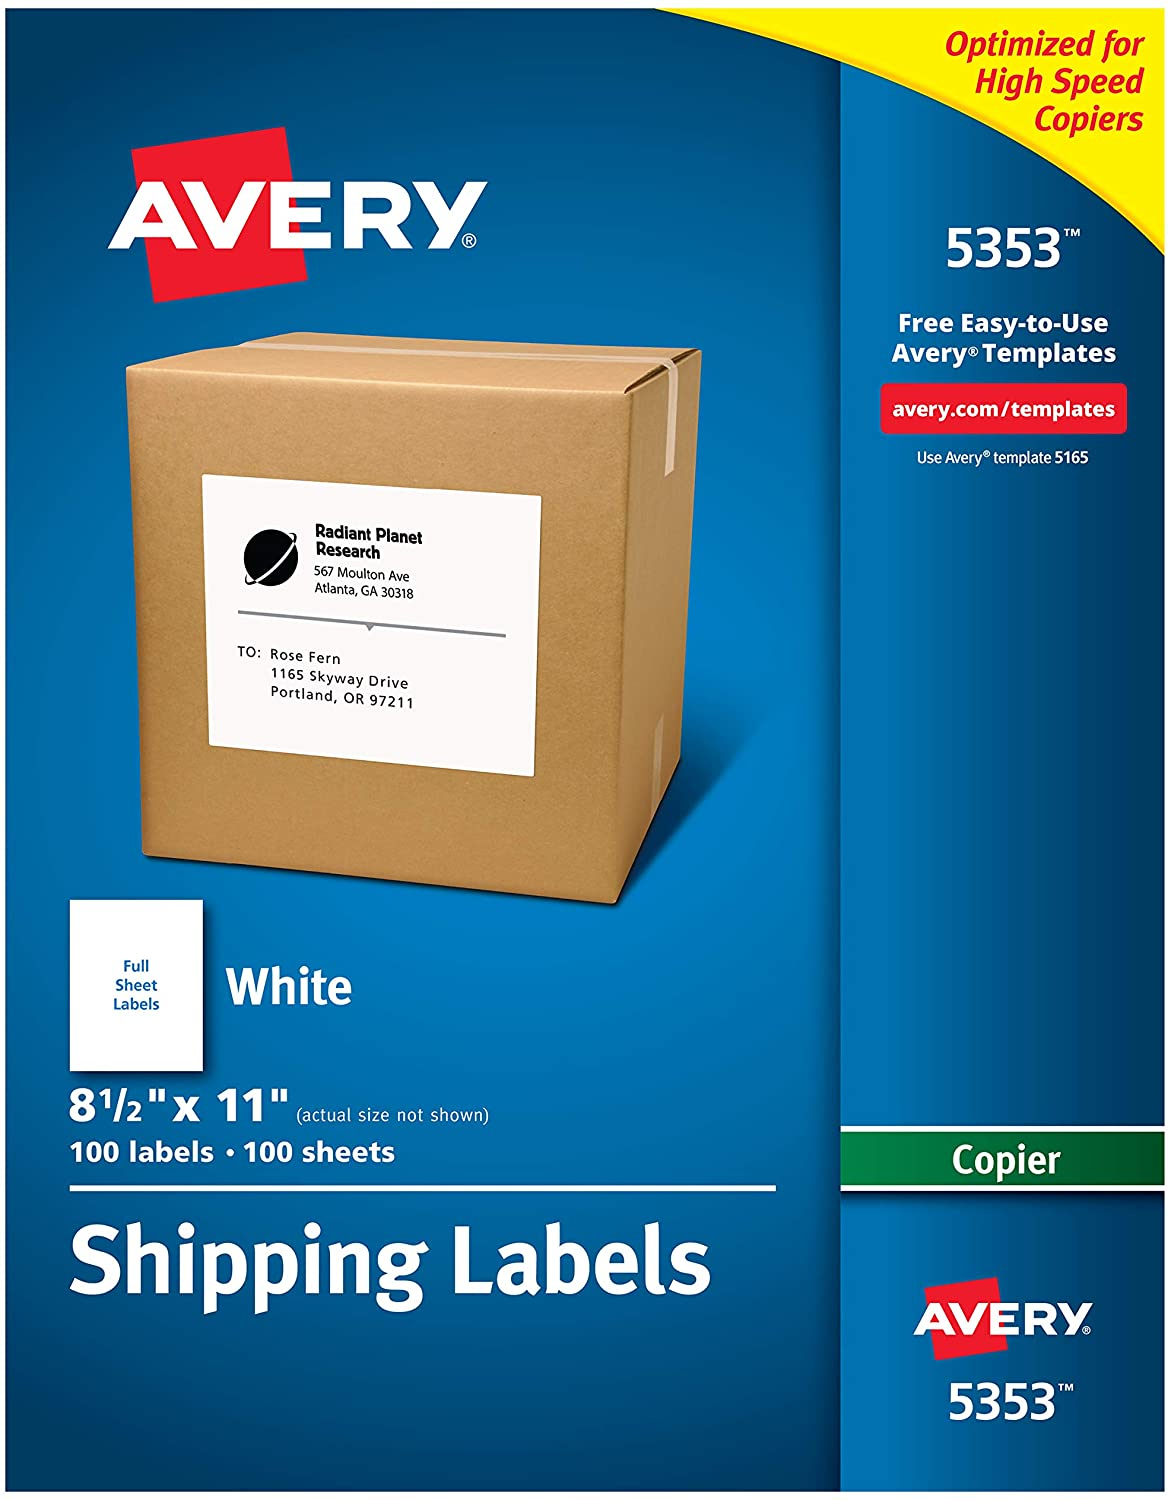 "B00006HQEJ Avery Shipping Labels for Copiers, 8-1/2"" x 11"", 100 White Labels (5353) 81T3YvbkOtL"